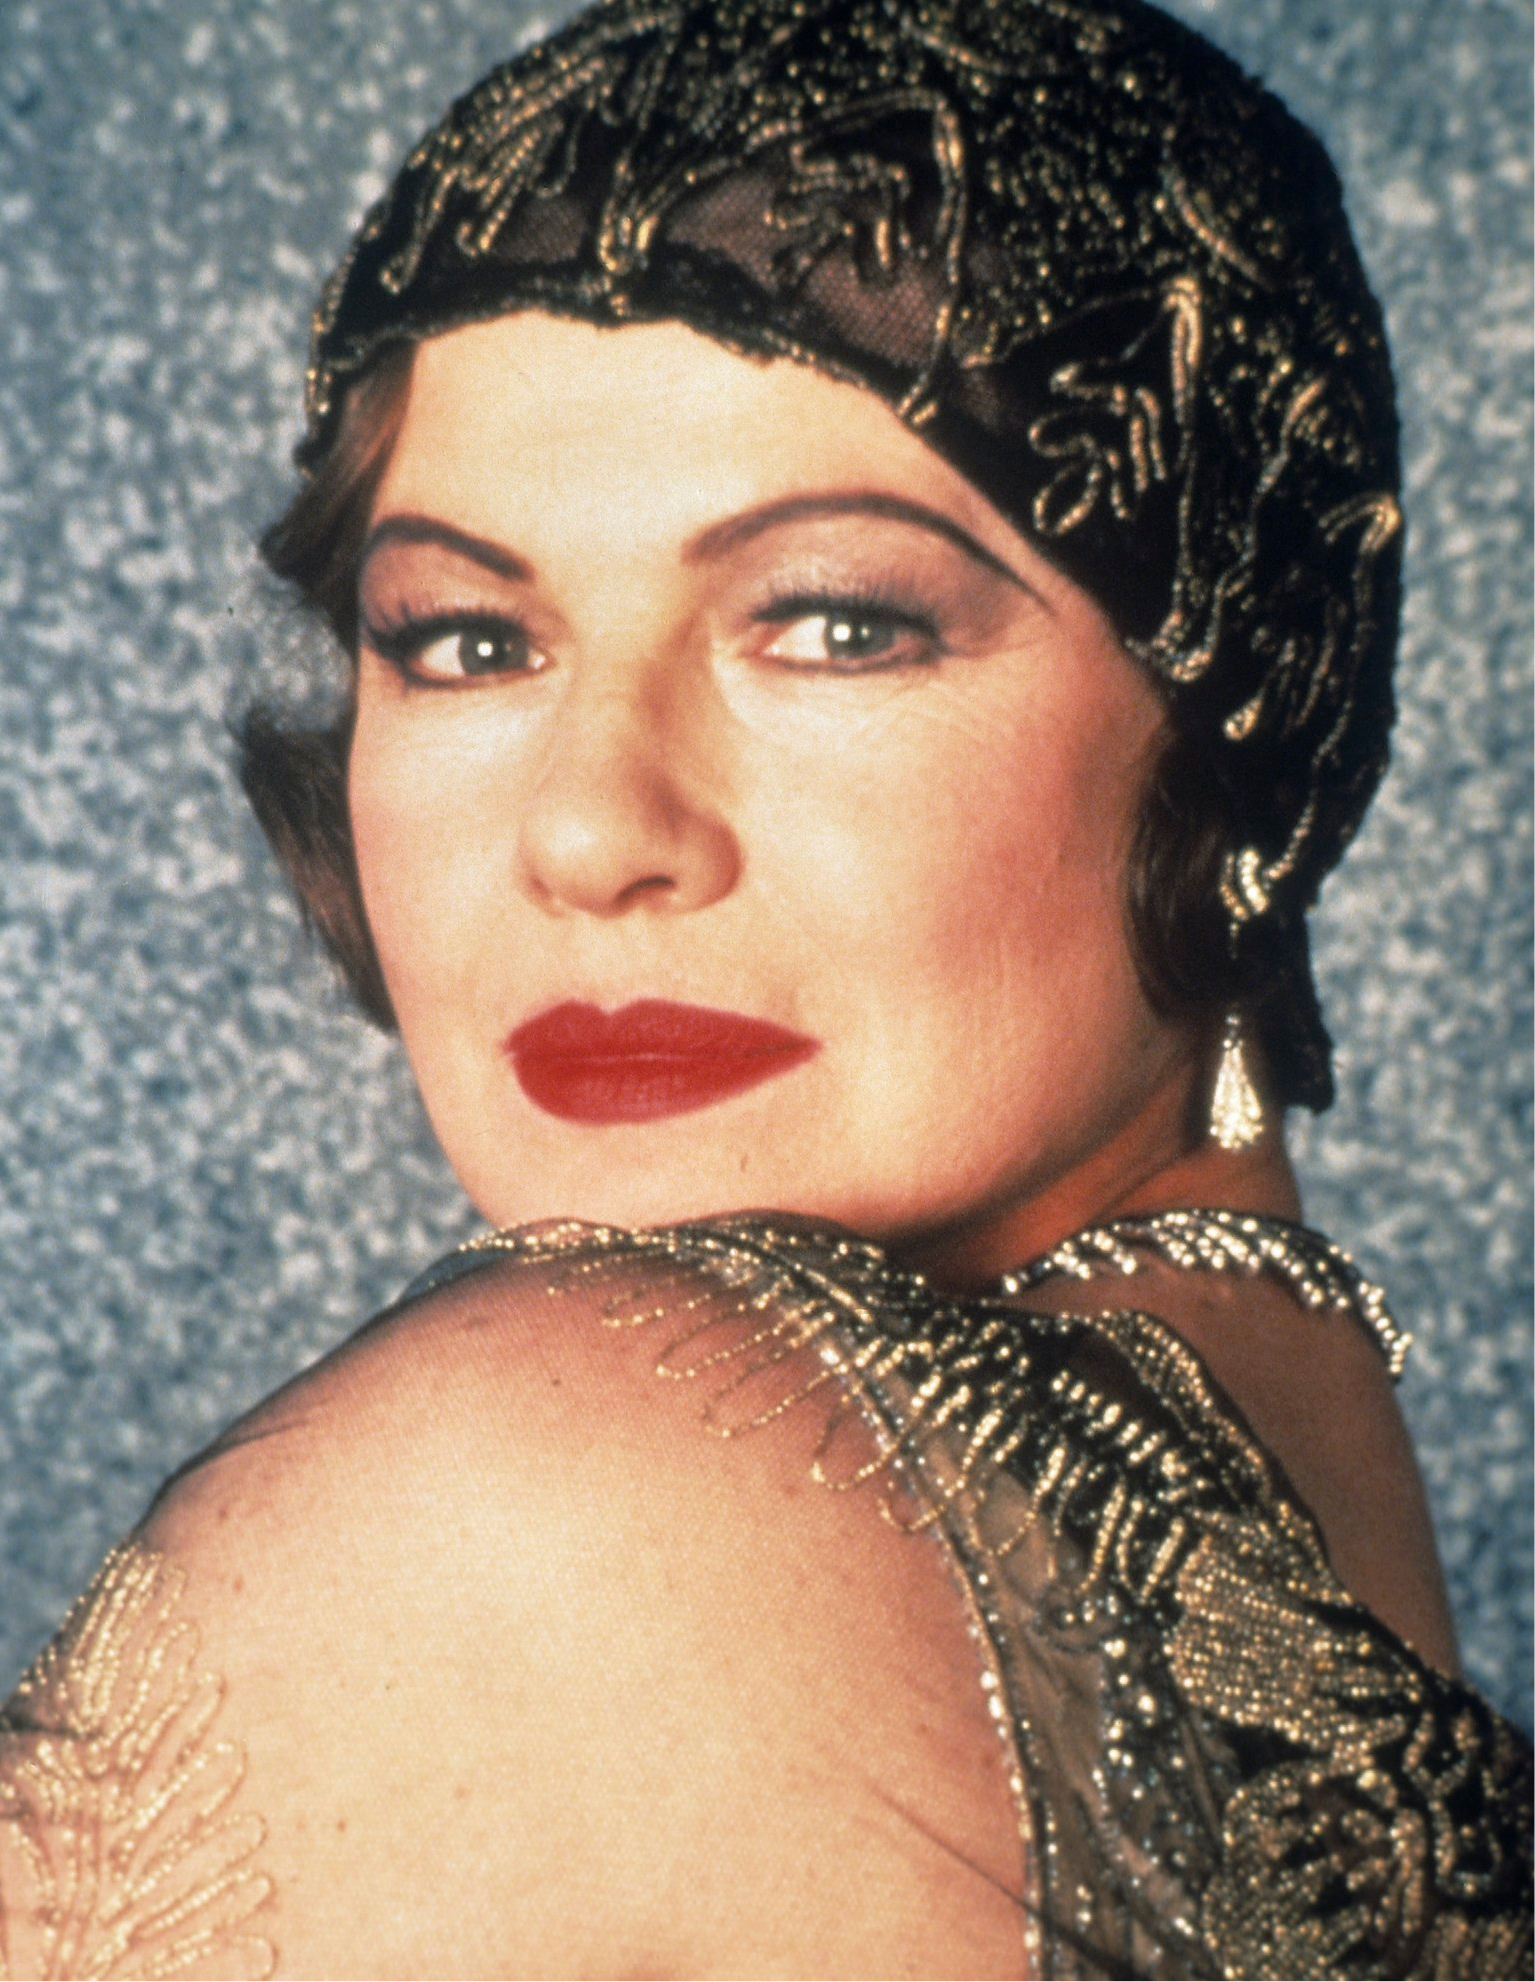 Dianne Wiest in Bullets Over Broadway (1994)